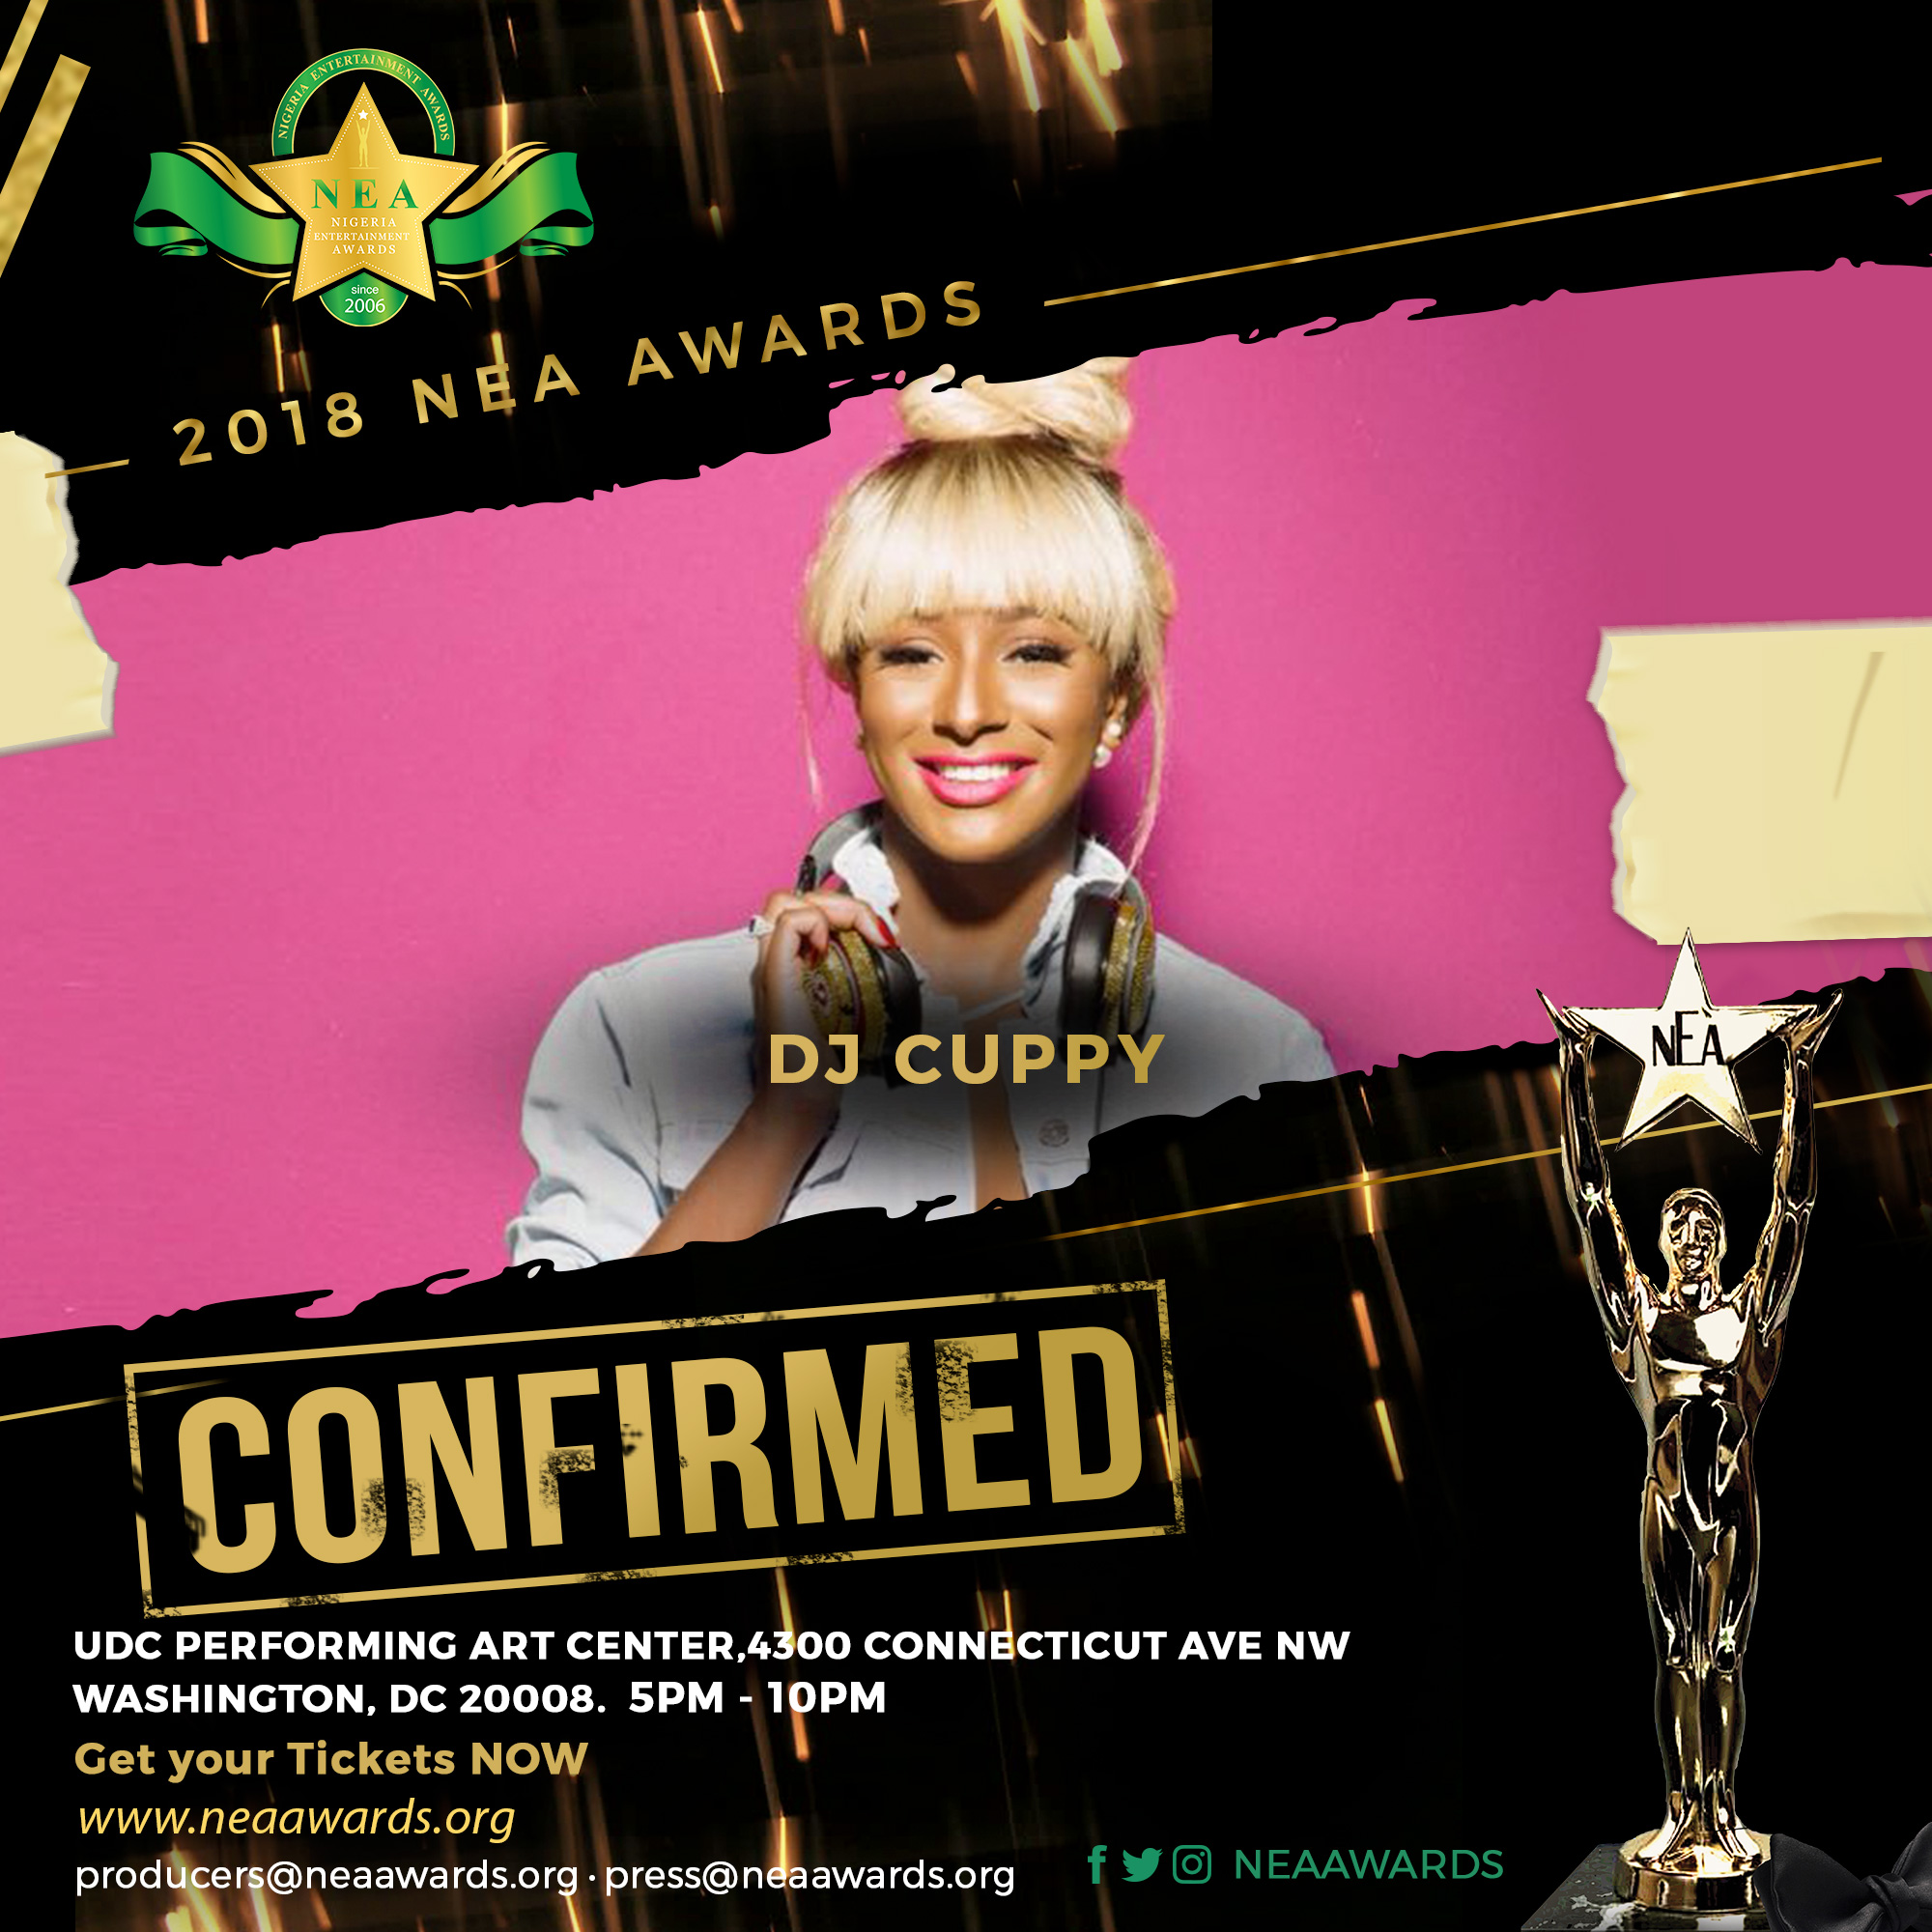 CONFIRMED-NEA-DJ-CUPPY